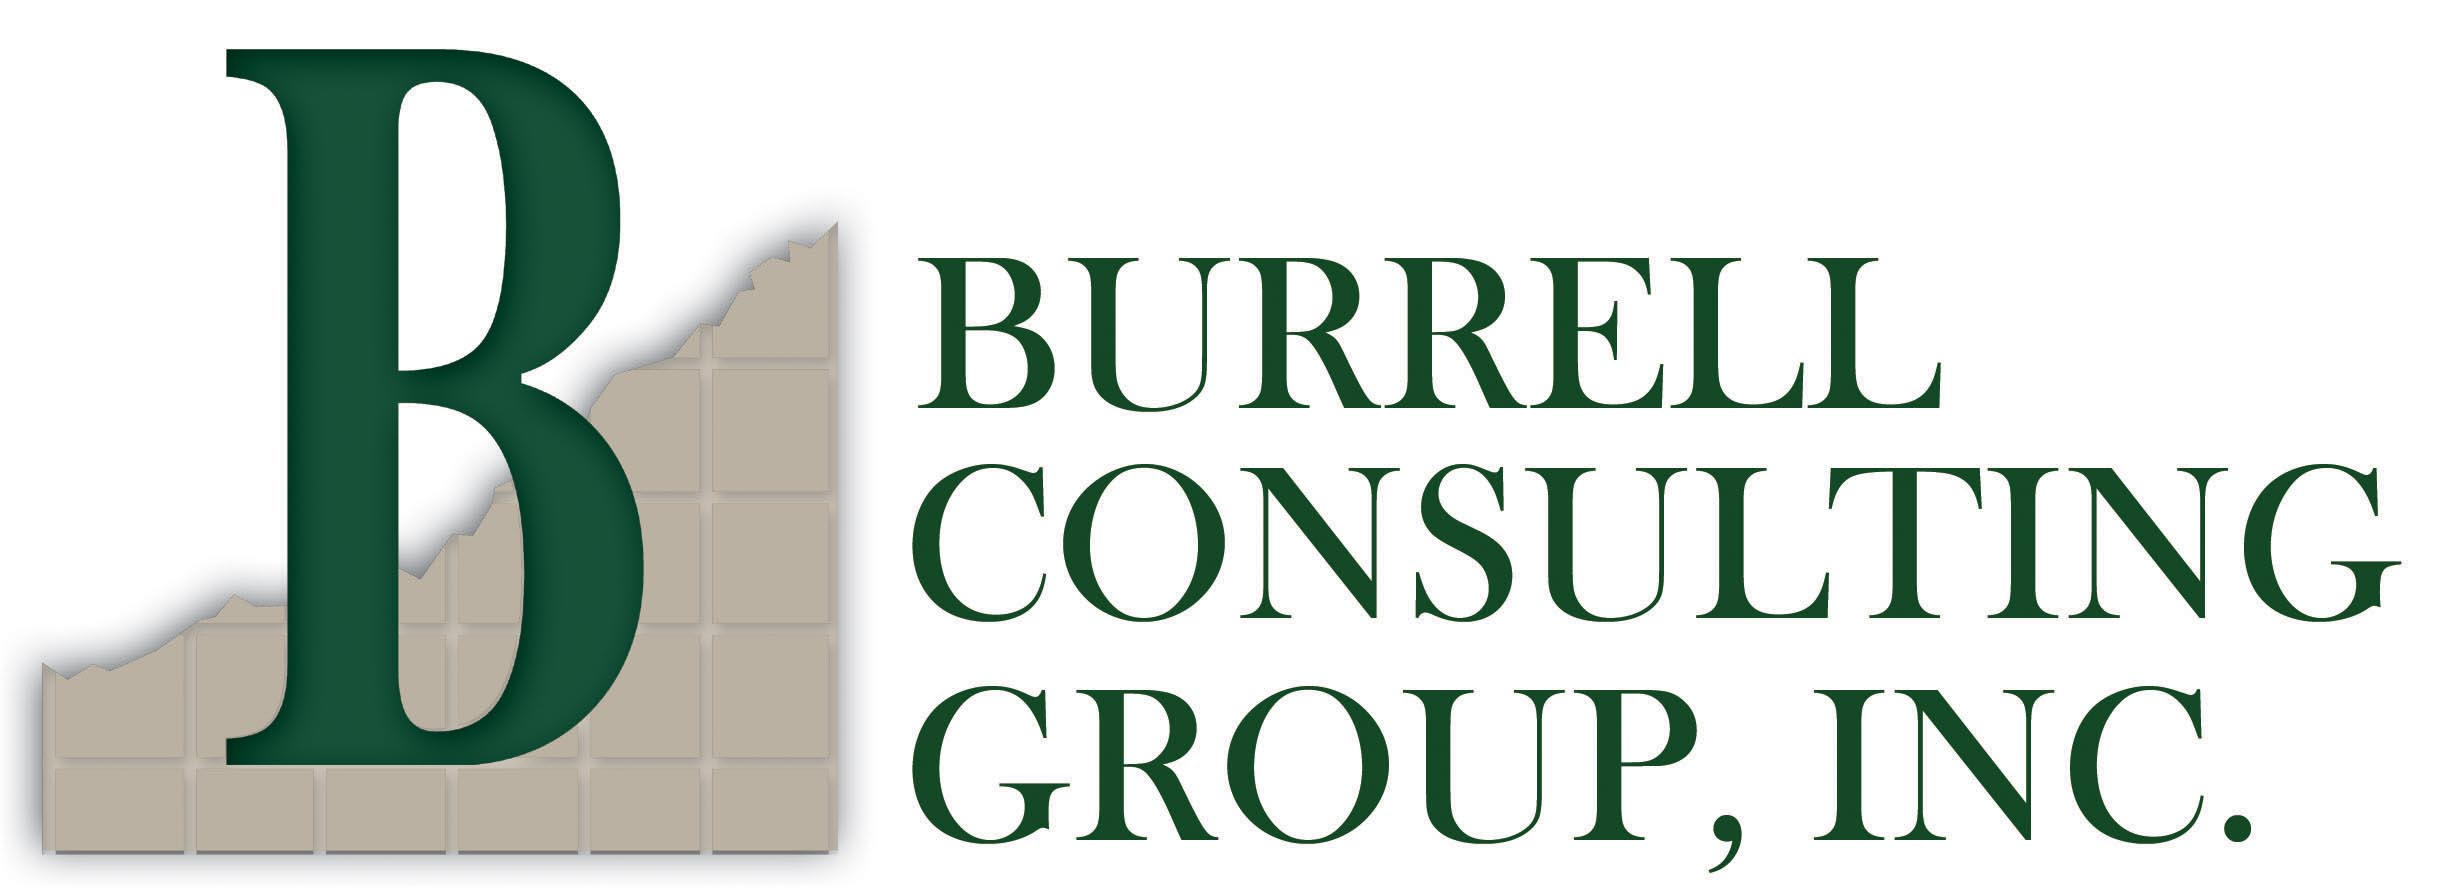 Burell Consulting Group